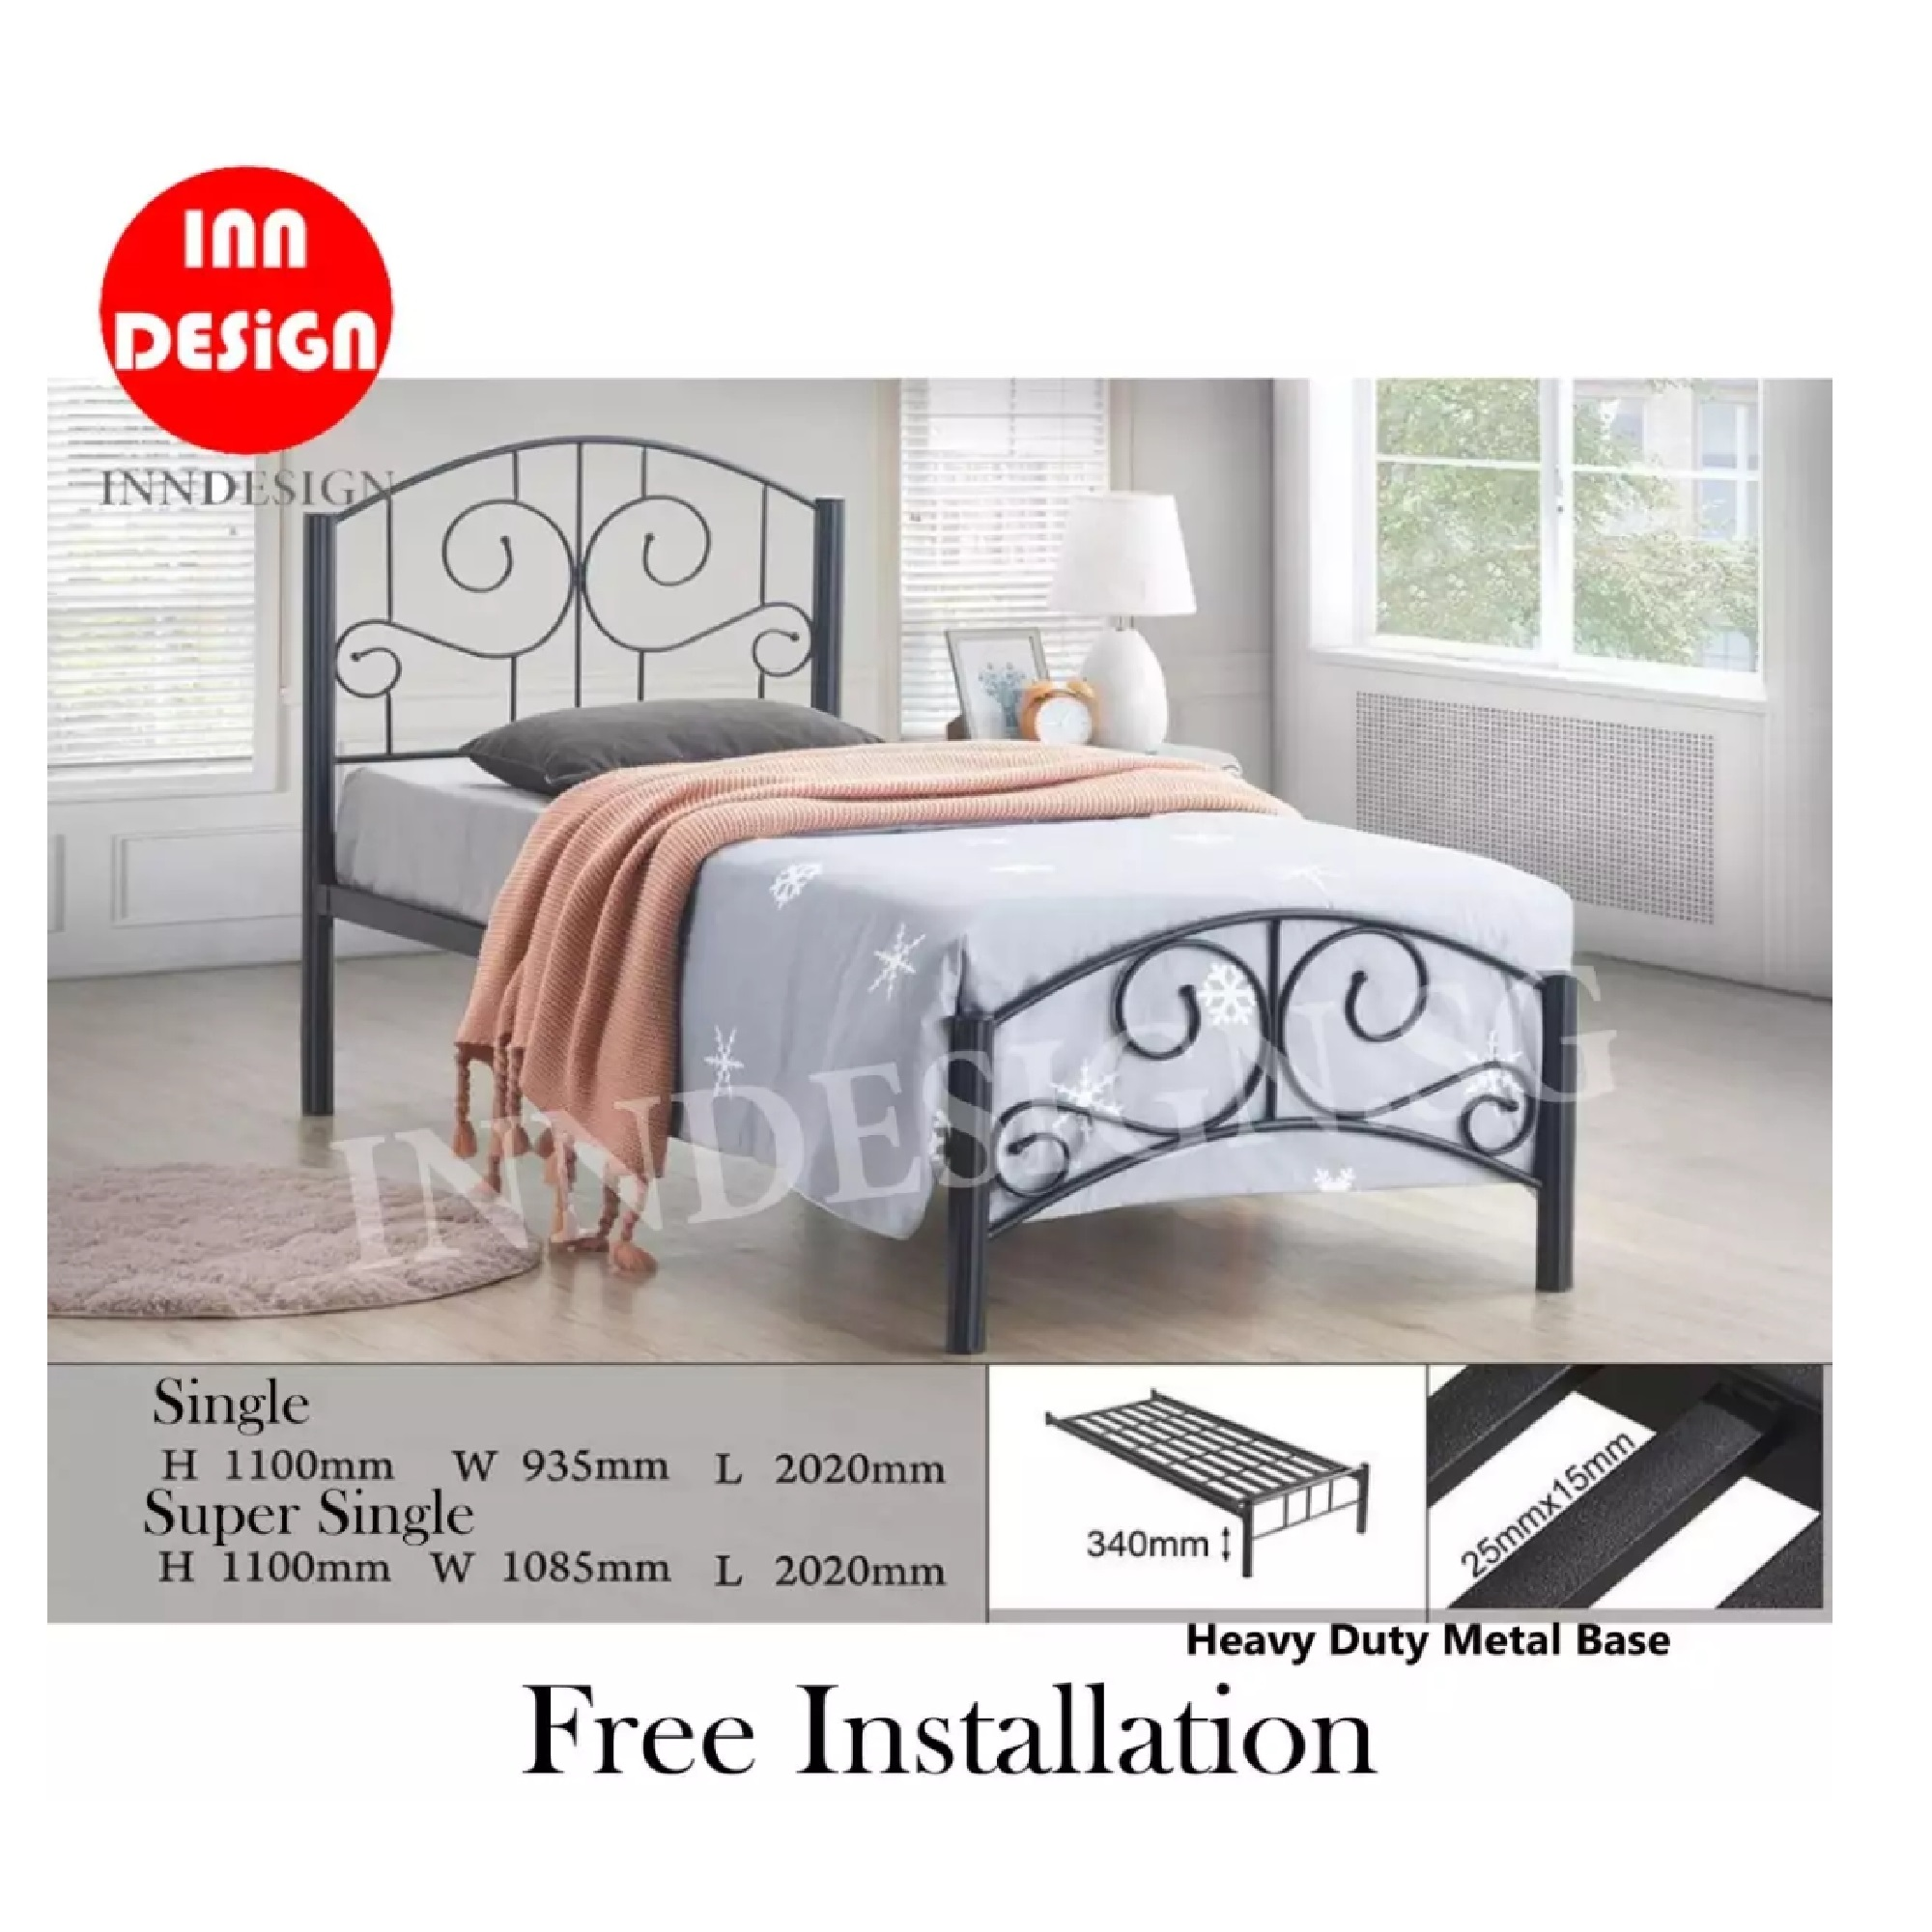 Emi III Super Single Heavy Duty Metal Bedframe / Bed (Free Delivery and Installation)